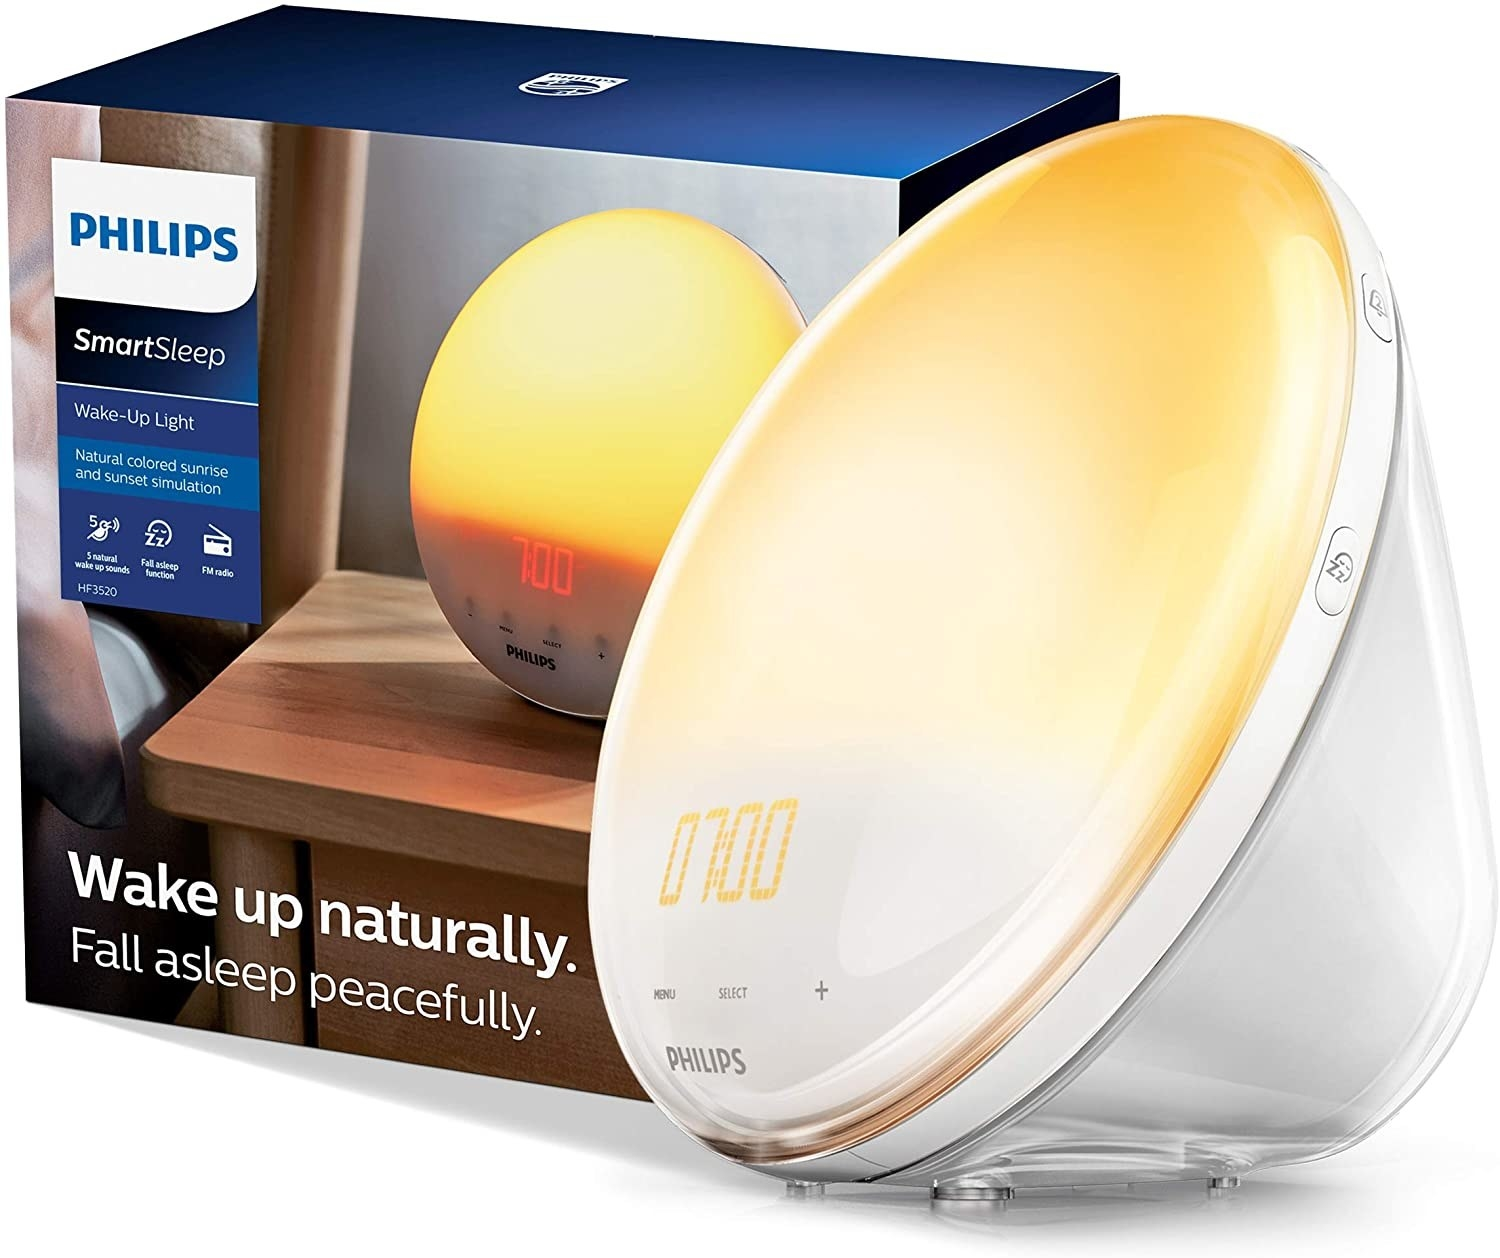 The wake up light (and its packaging) which has the time and menu, select, and + buttons